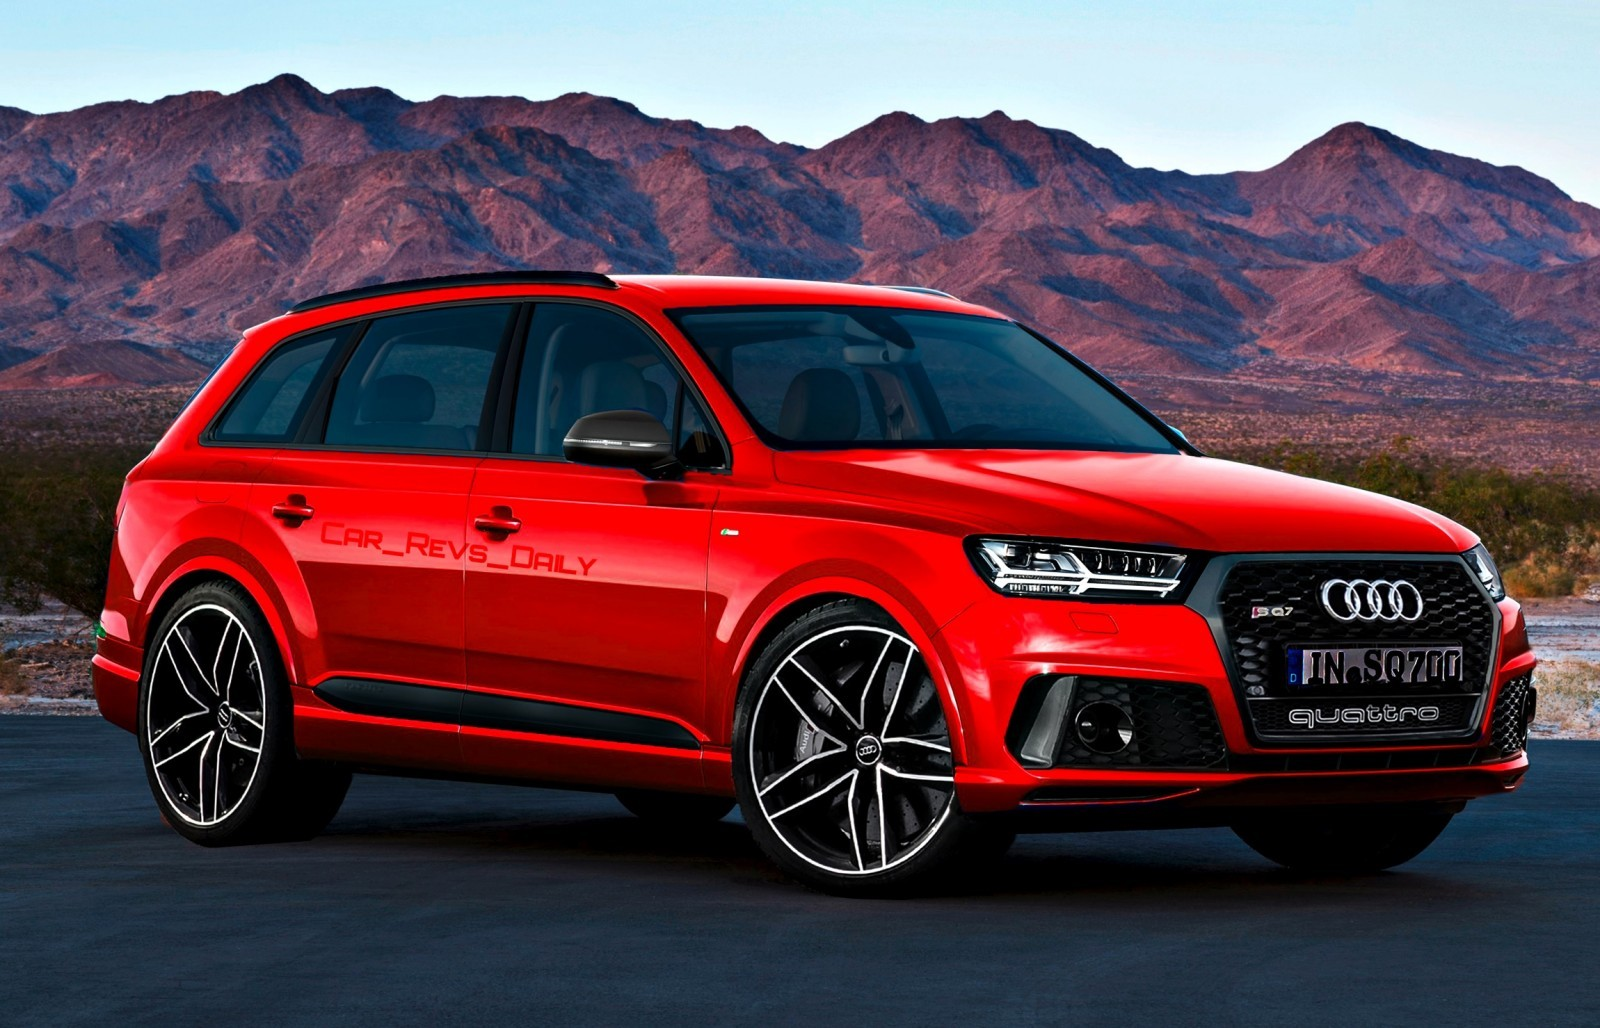 Volvo Of Houston >> Future SUV Renderings - 2016 Audi RS Q7 10